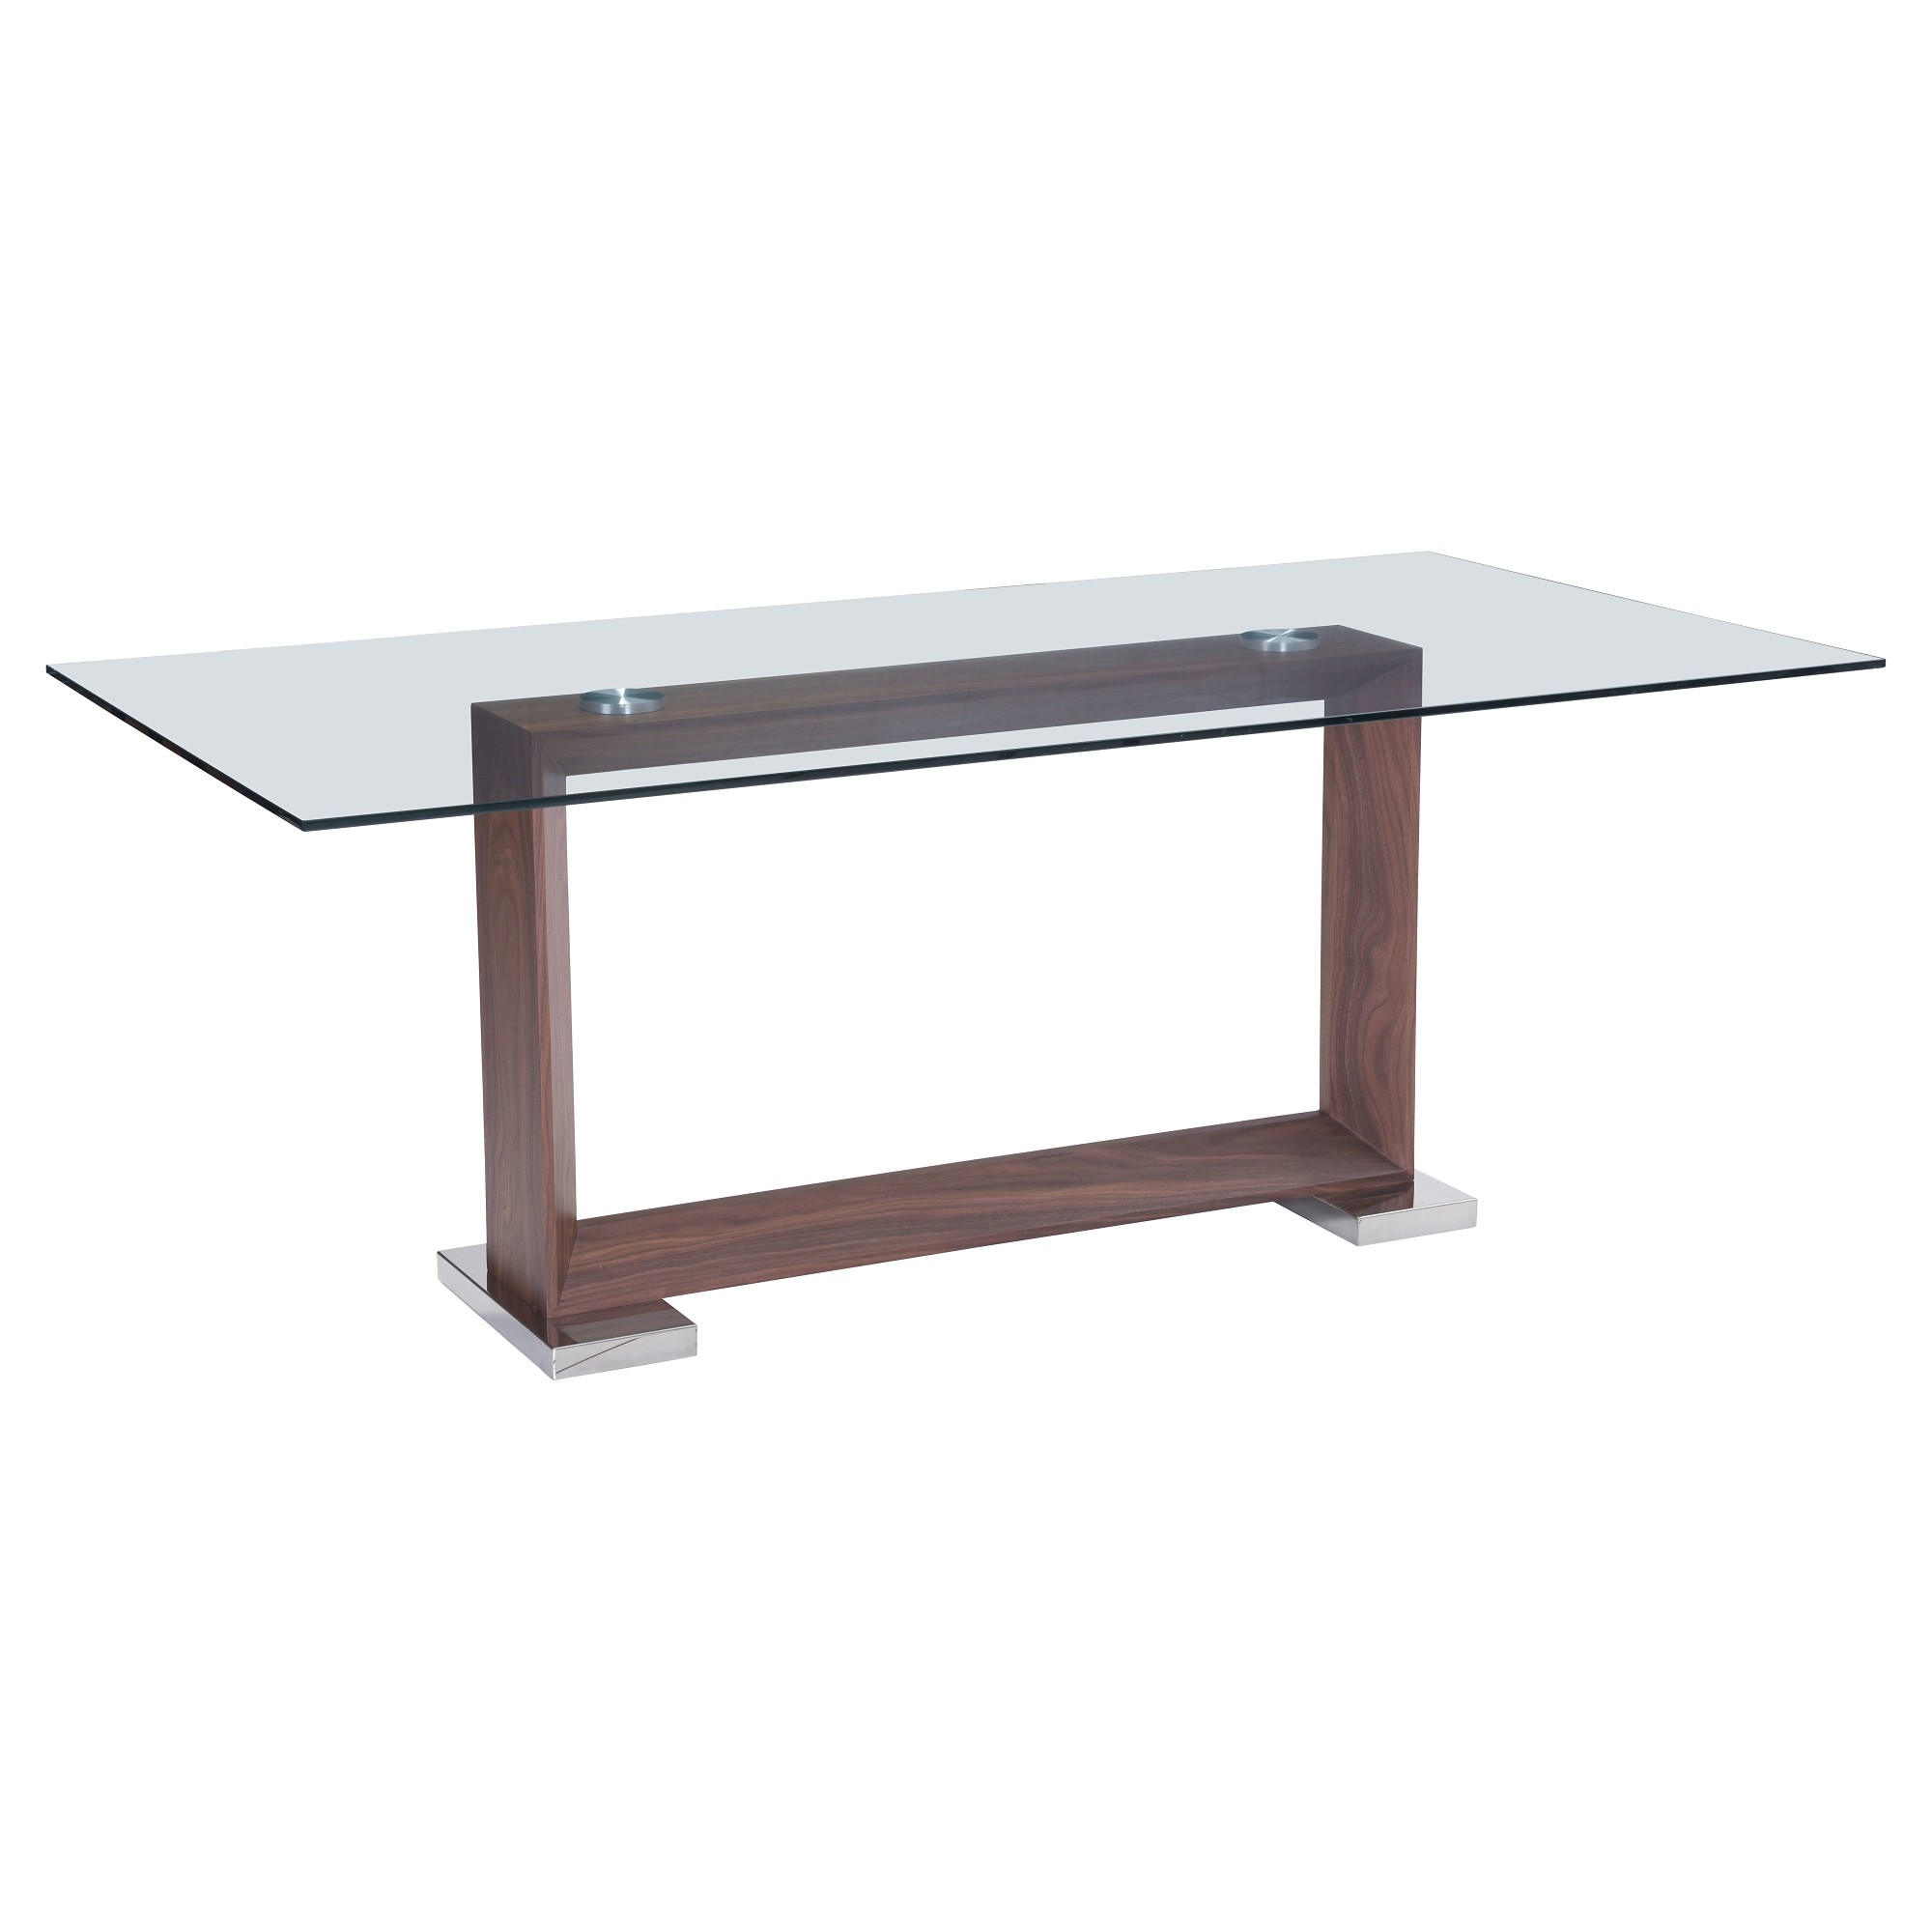 Stainless Steel Dining Room Tables Unique Modern 79 Rectangular Tempered Glass And Polished Stainless Steel Design Ideas